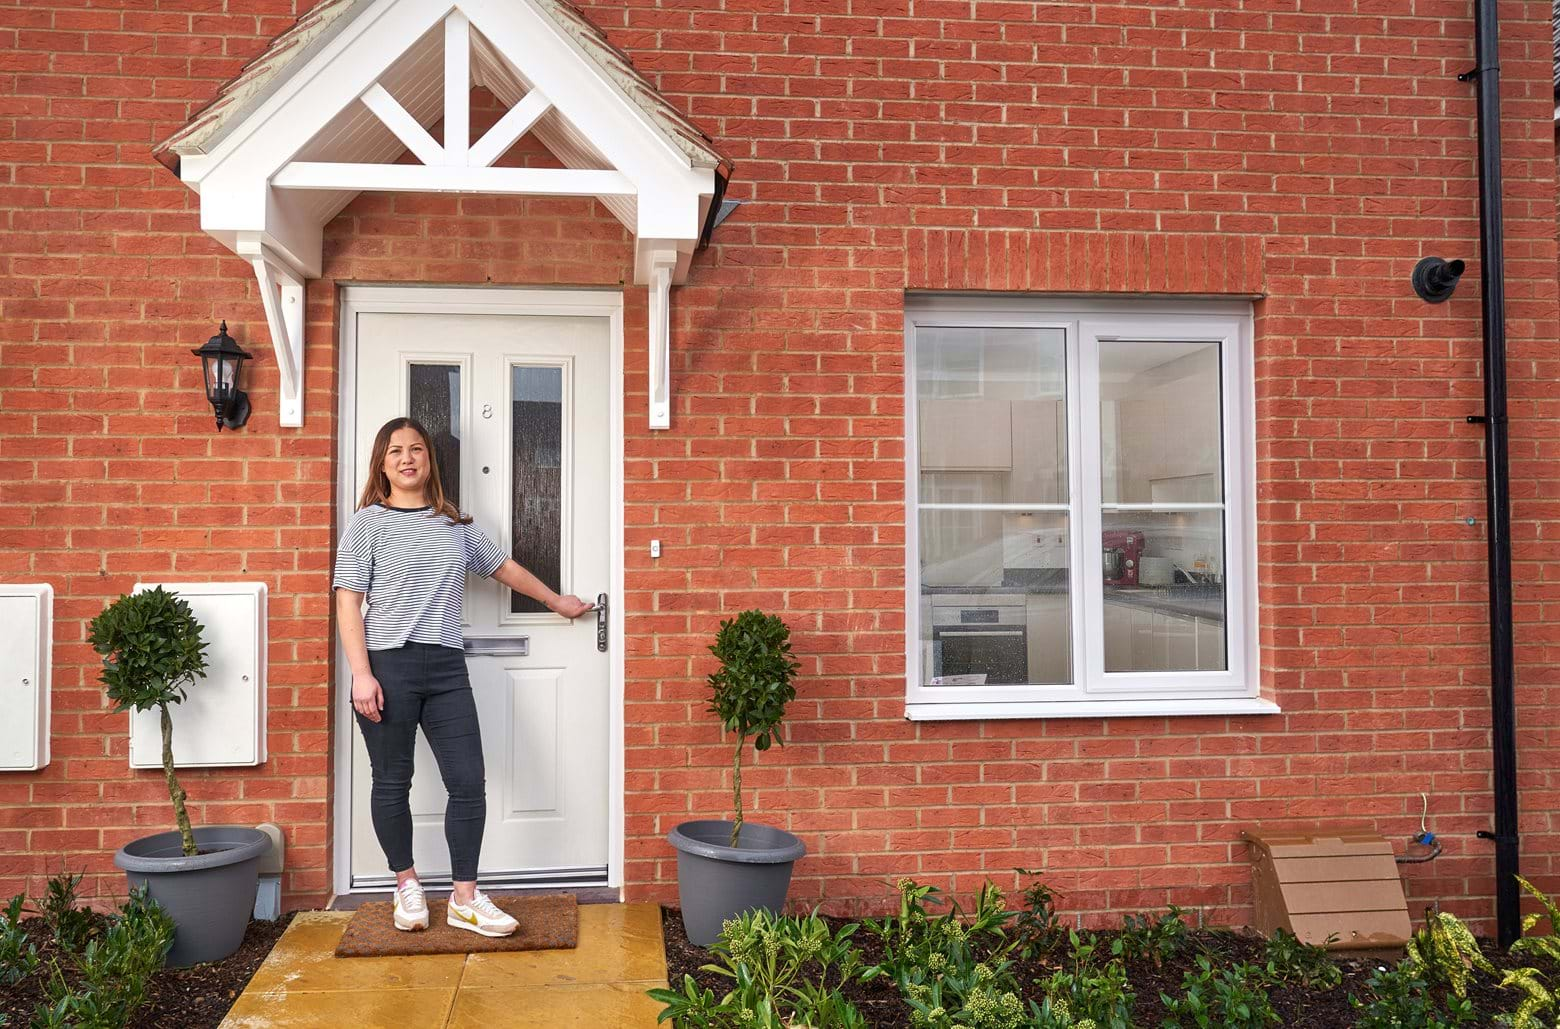 Leanda, used Shared Ownership to step onto the property ladder at Limebrook Walk, Maldon